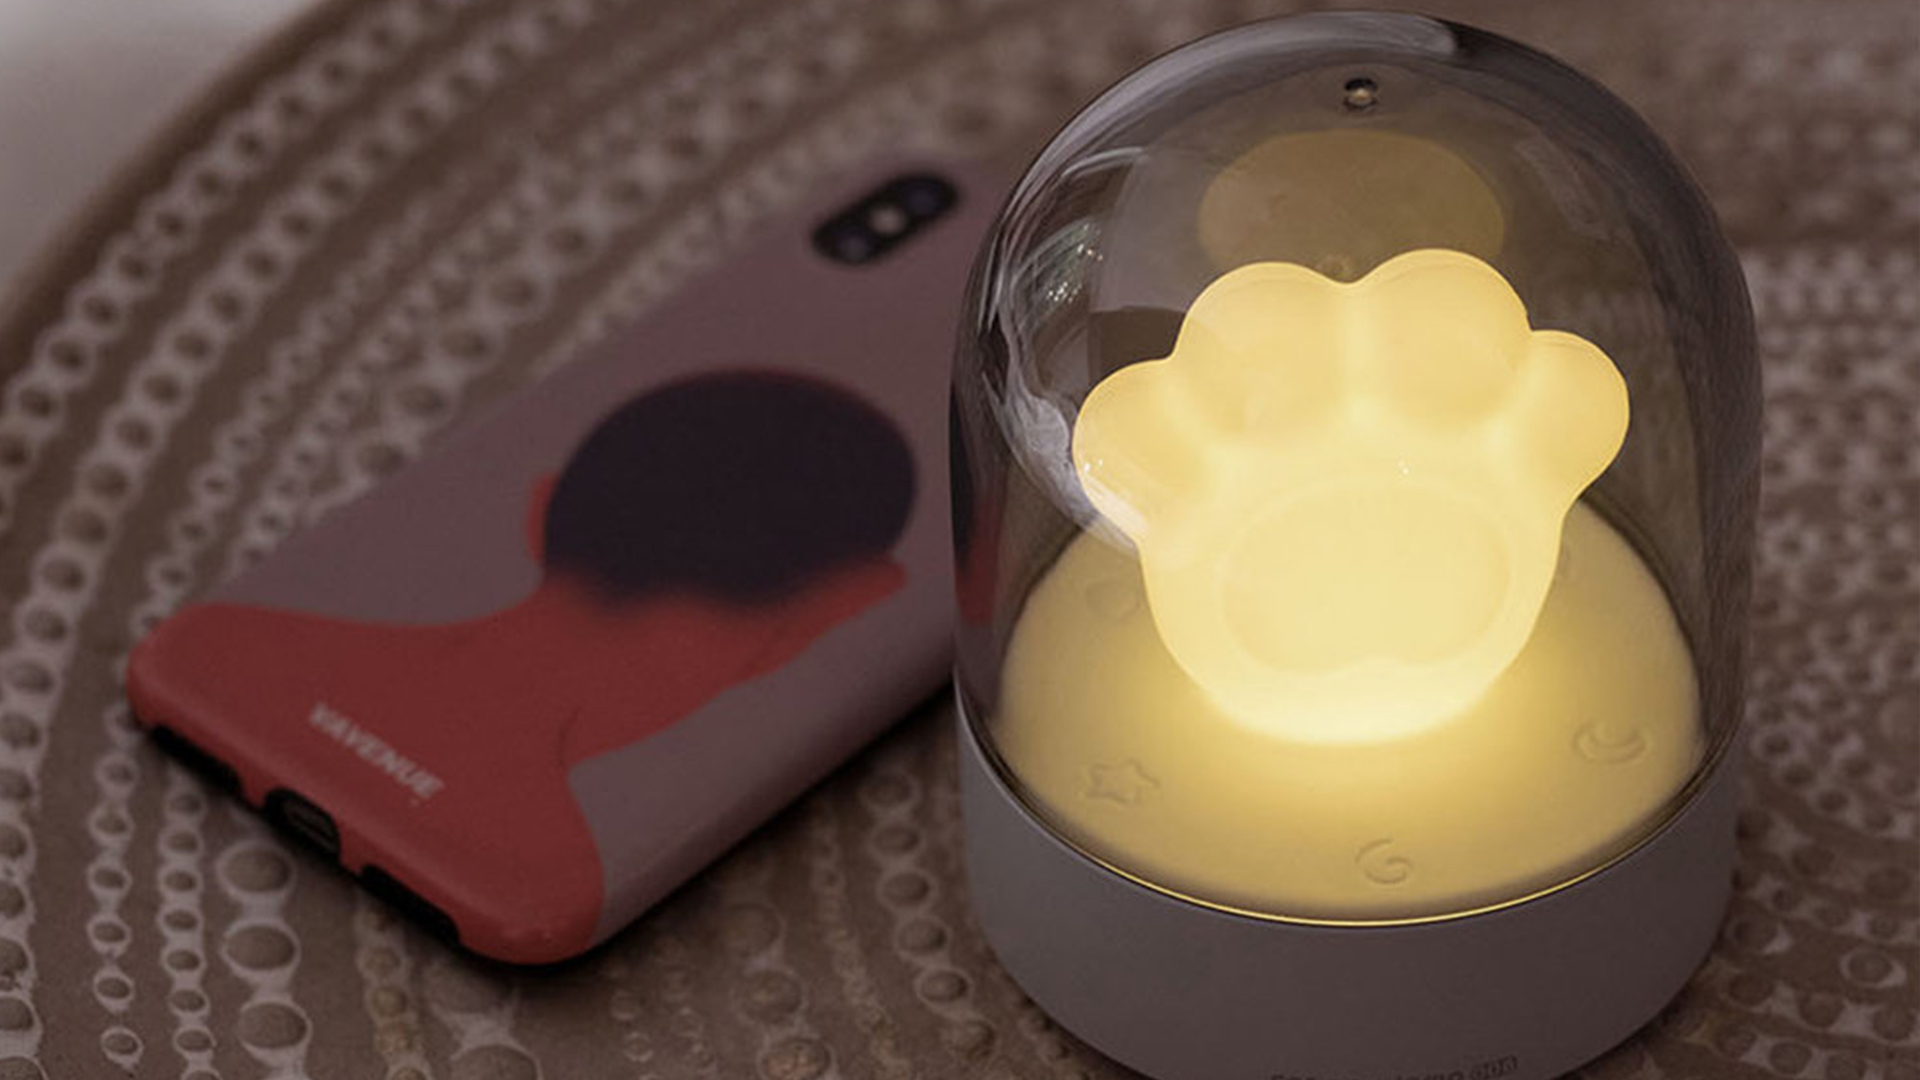 Cat Paw Music Lamp 9 - Sneapy